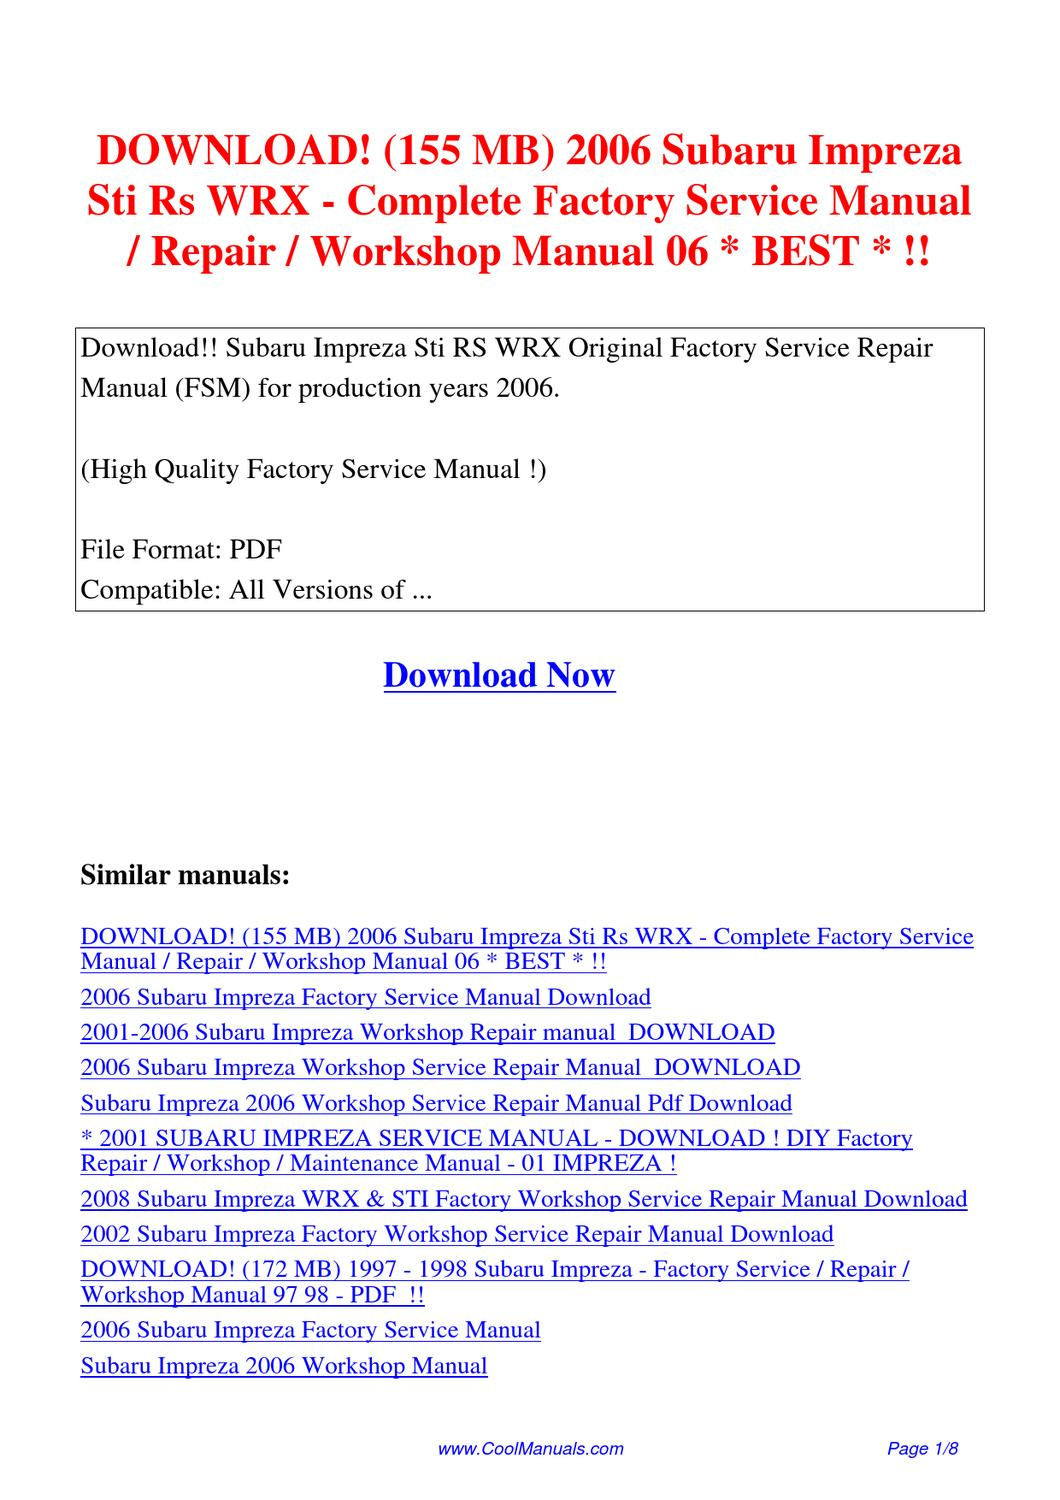 Subaru Wrx 1993 1996 Workshop Service Repair Manual Auto Wiring Ruud Diagram Uomb 084c 155 Mb 2006 Impreza Sti Rs